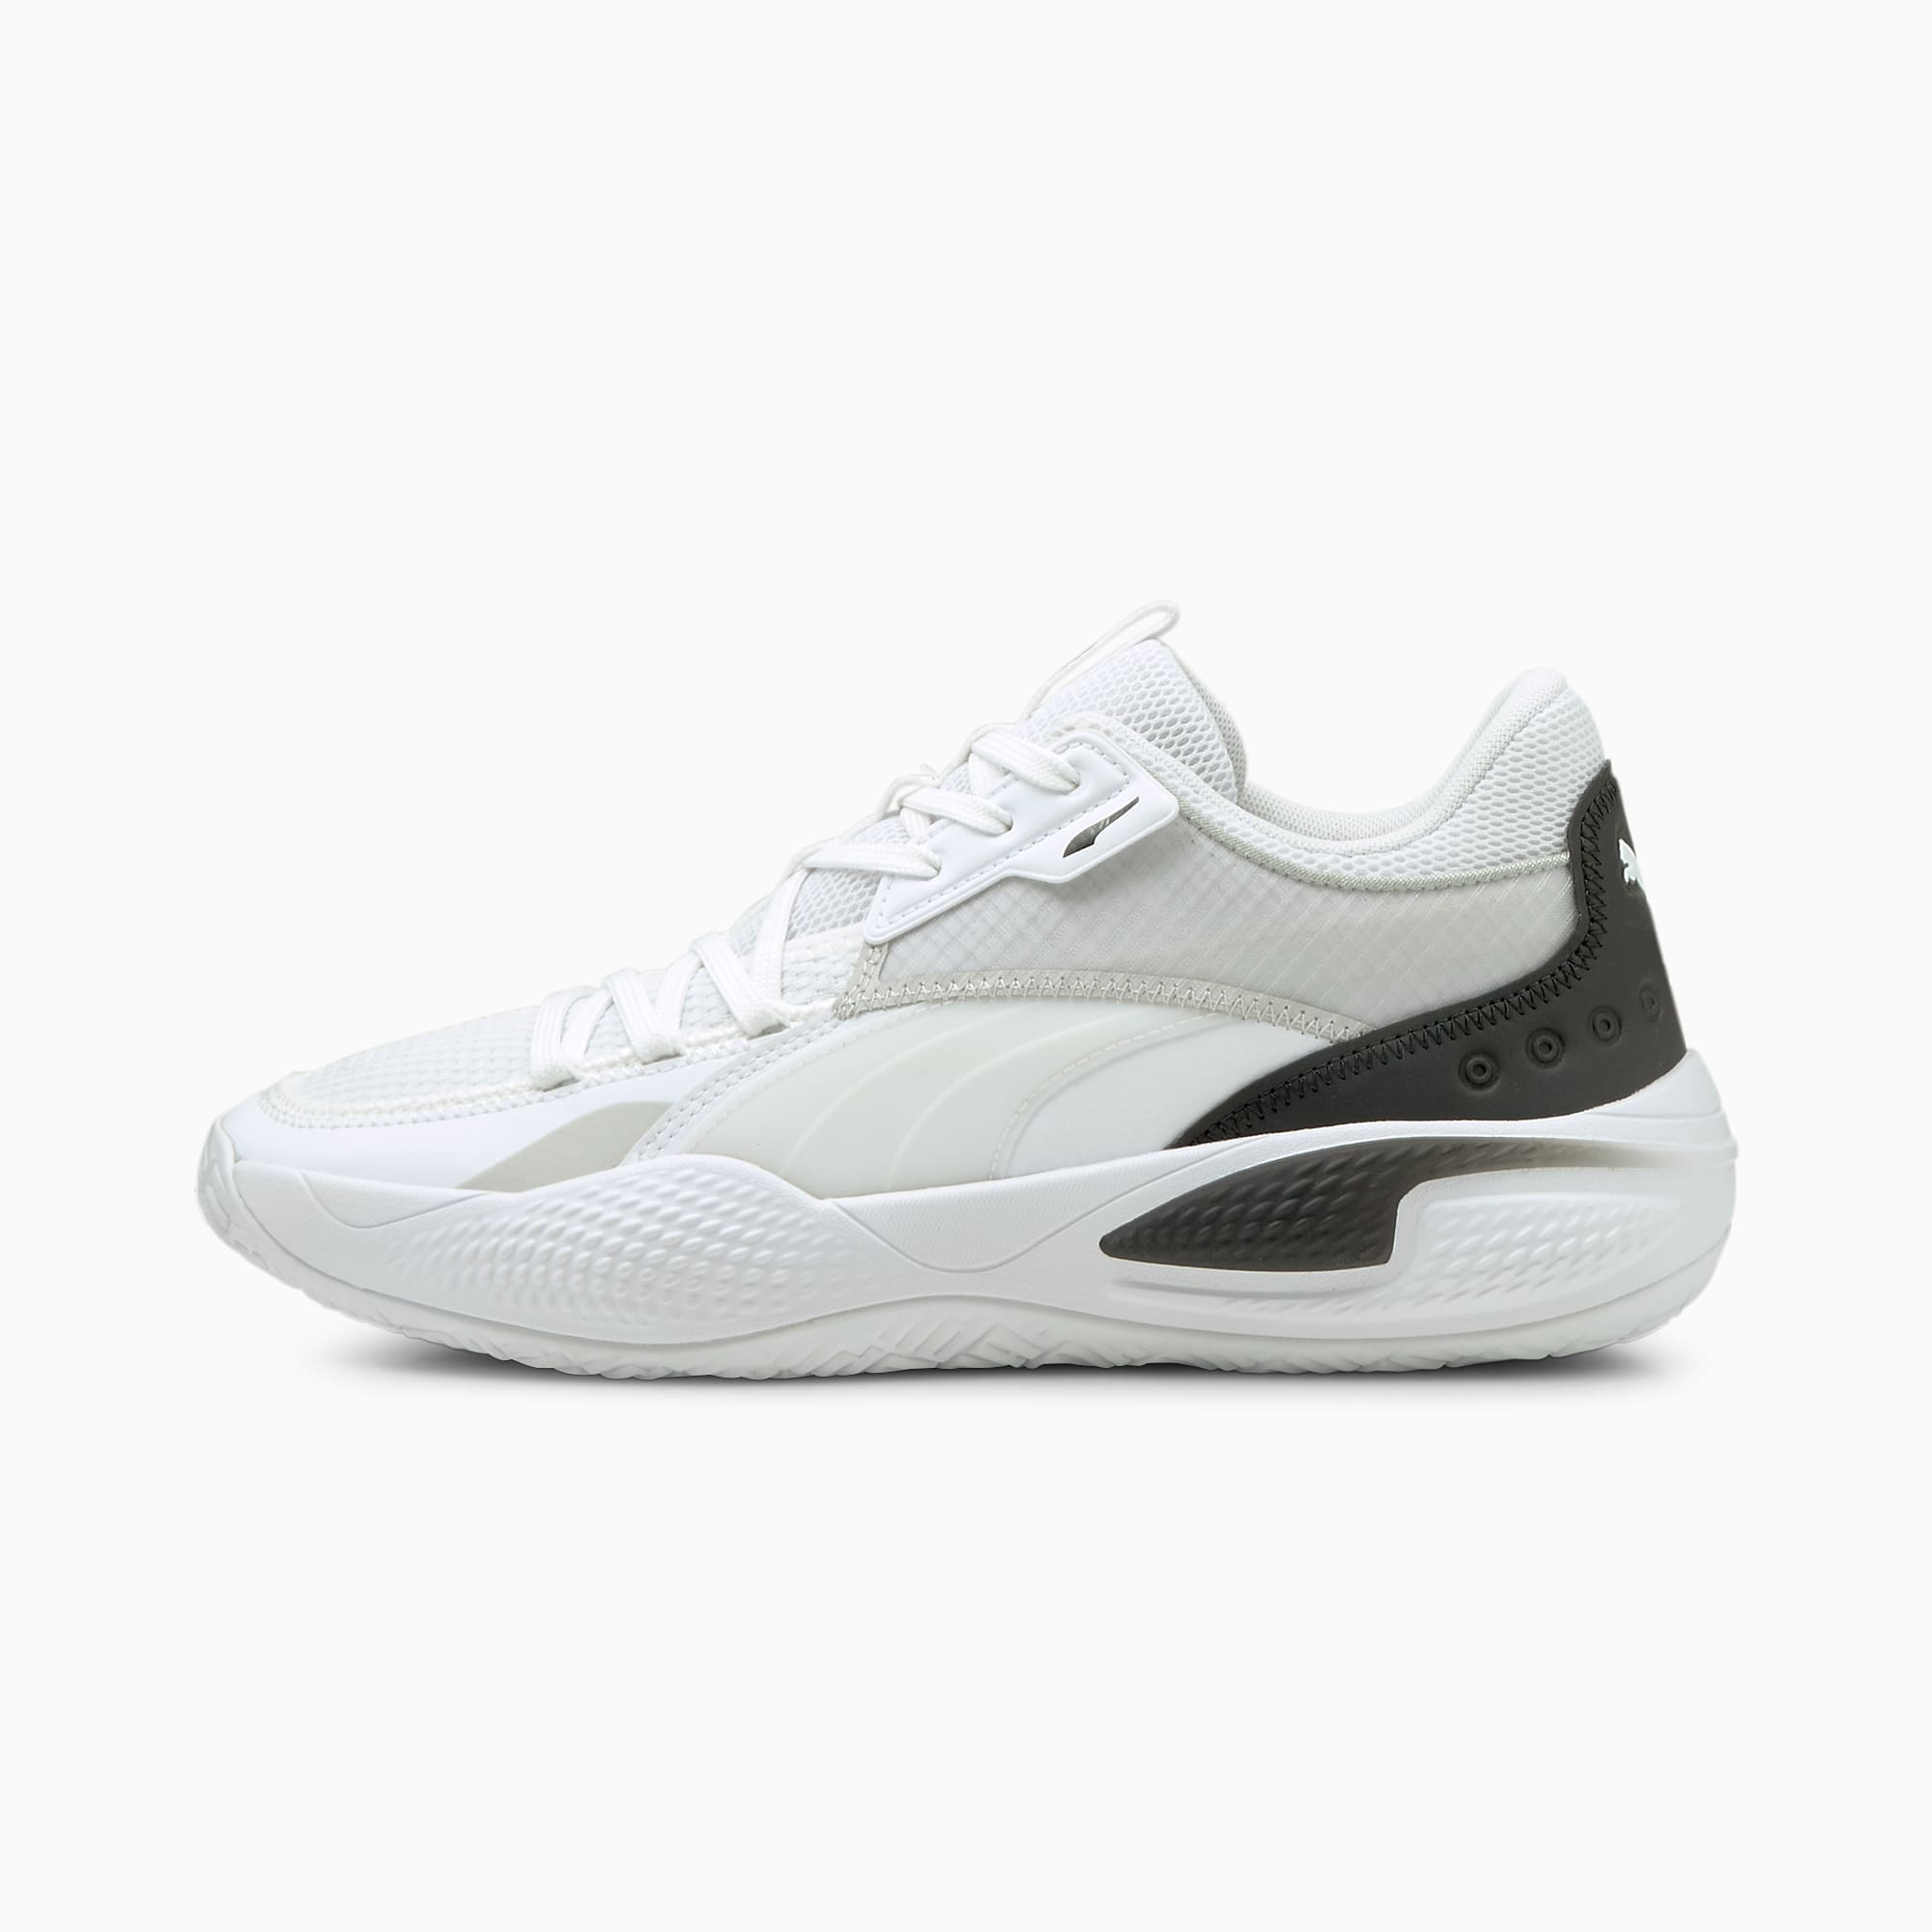 Court Rider I Basketball Shoes